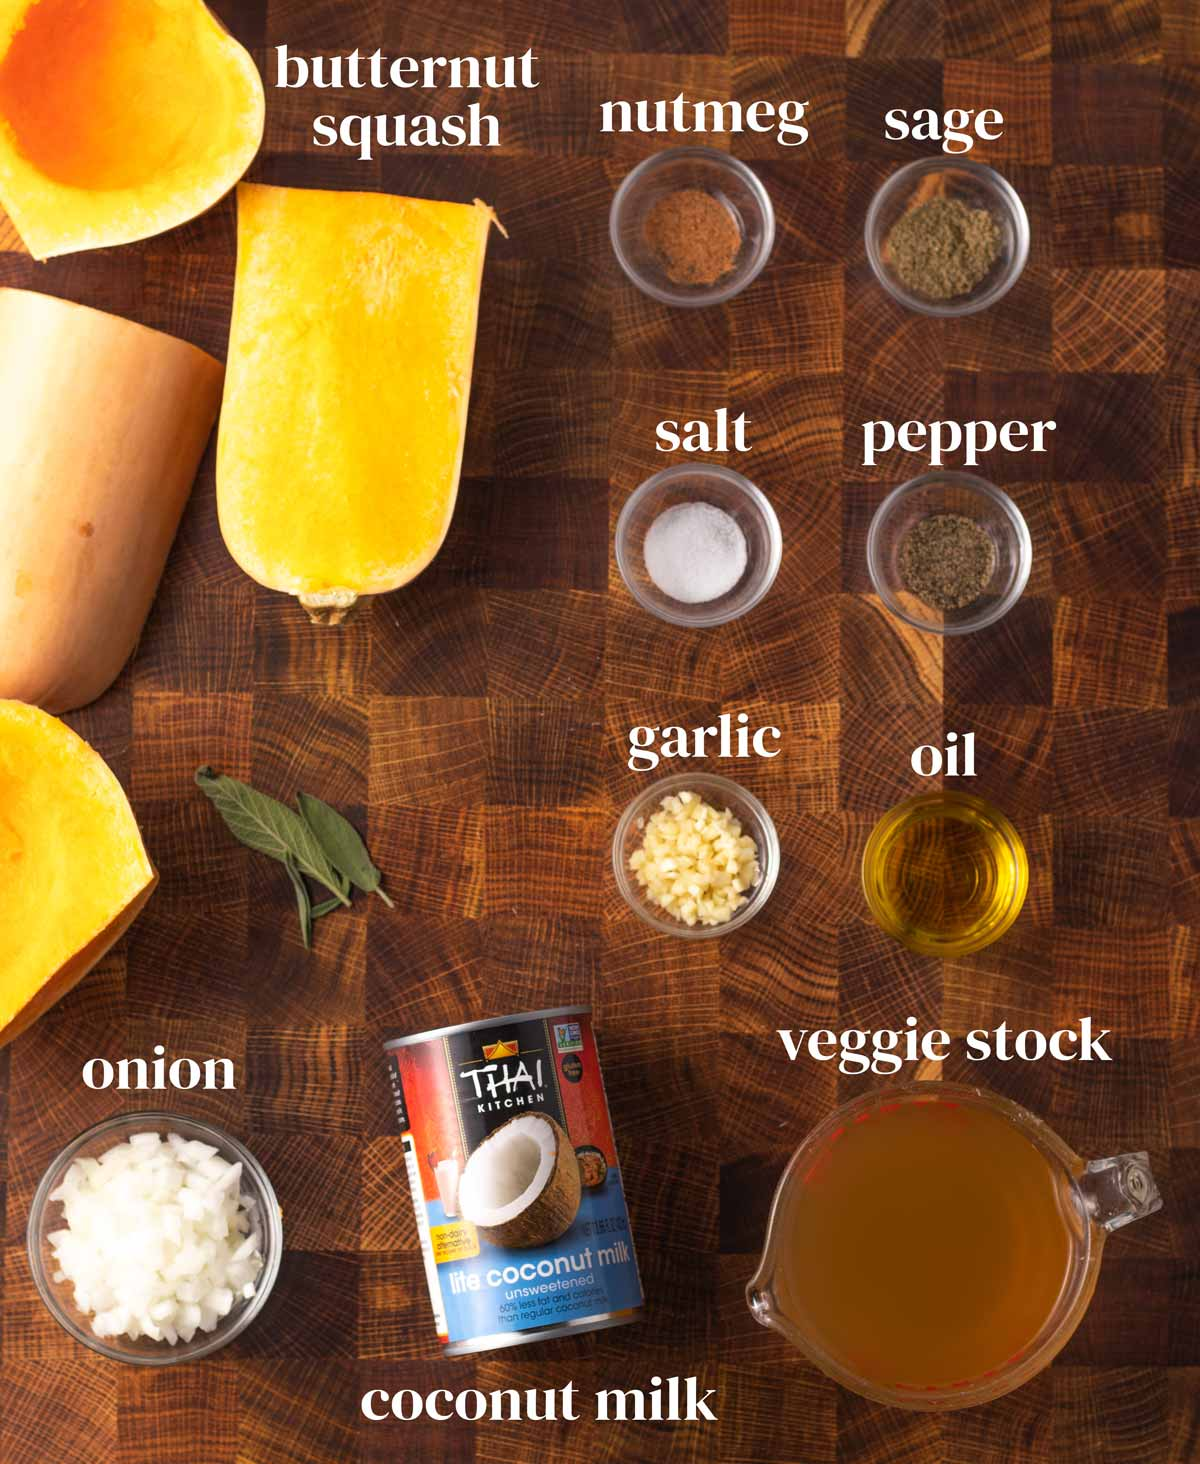 ingredients for vegan butternut squash soup with coconut milk, onions and vegetable stock